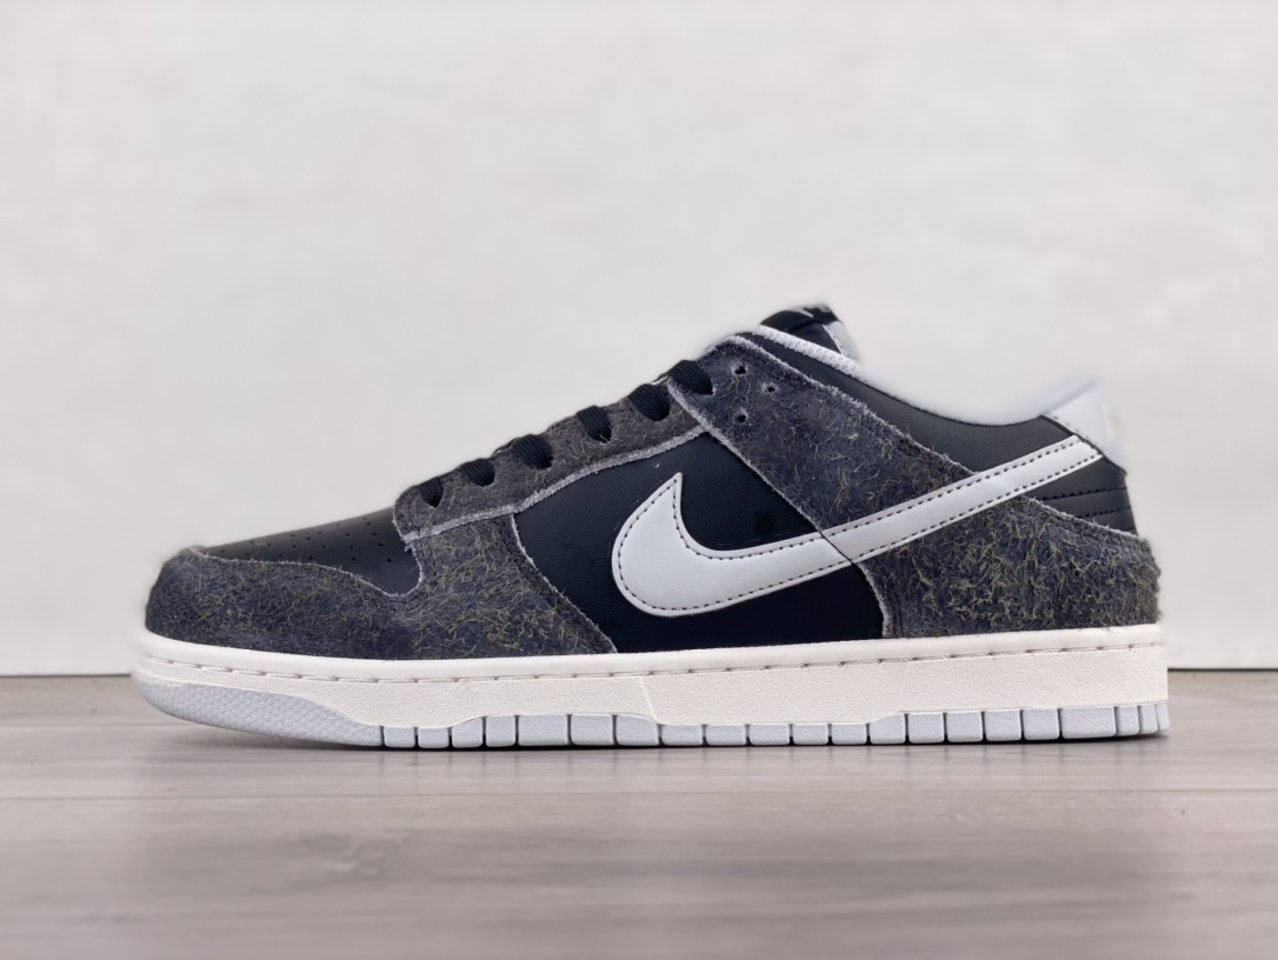 2021 Release Nike Dunk Low Retro Animal Pack Zebra DH7913-001